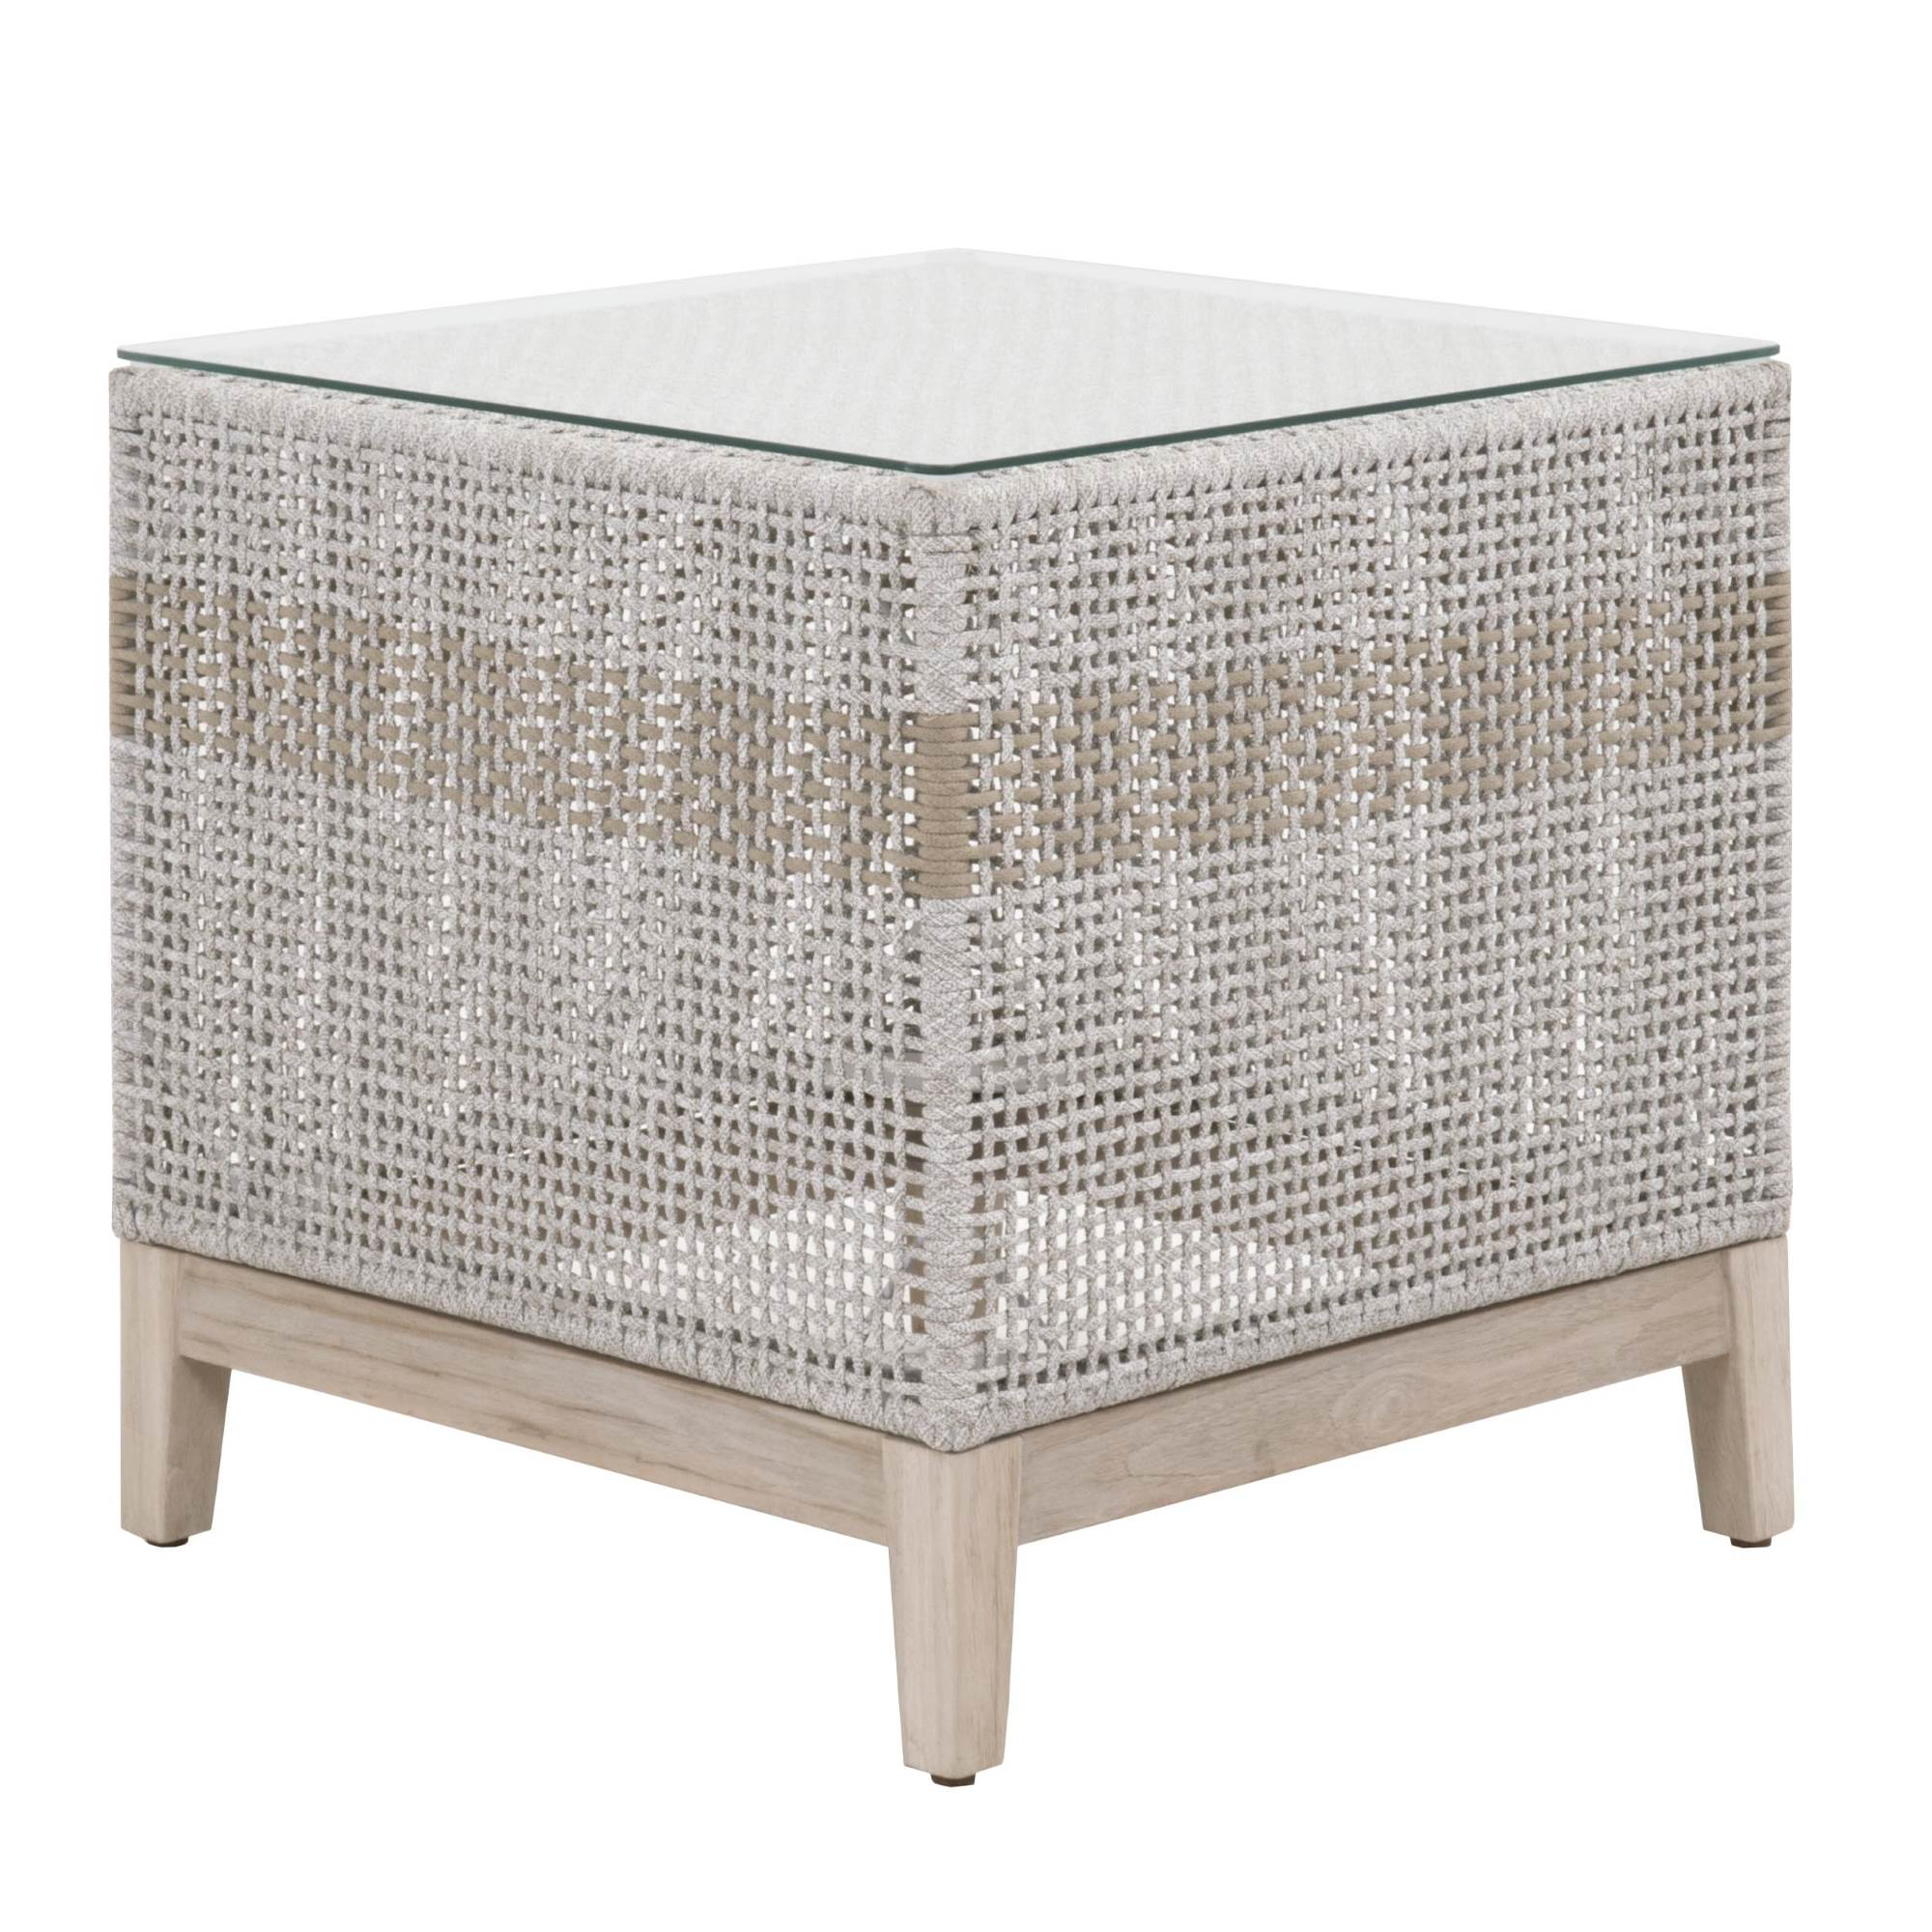 Essentials for Living-Tapestry Outdoor End Table-Outdoor Side Tables-MODTEMPO